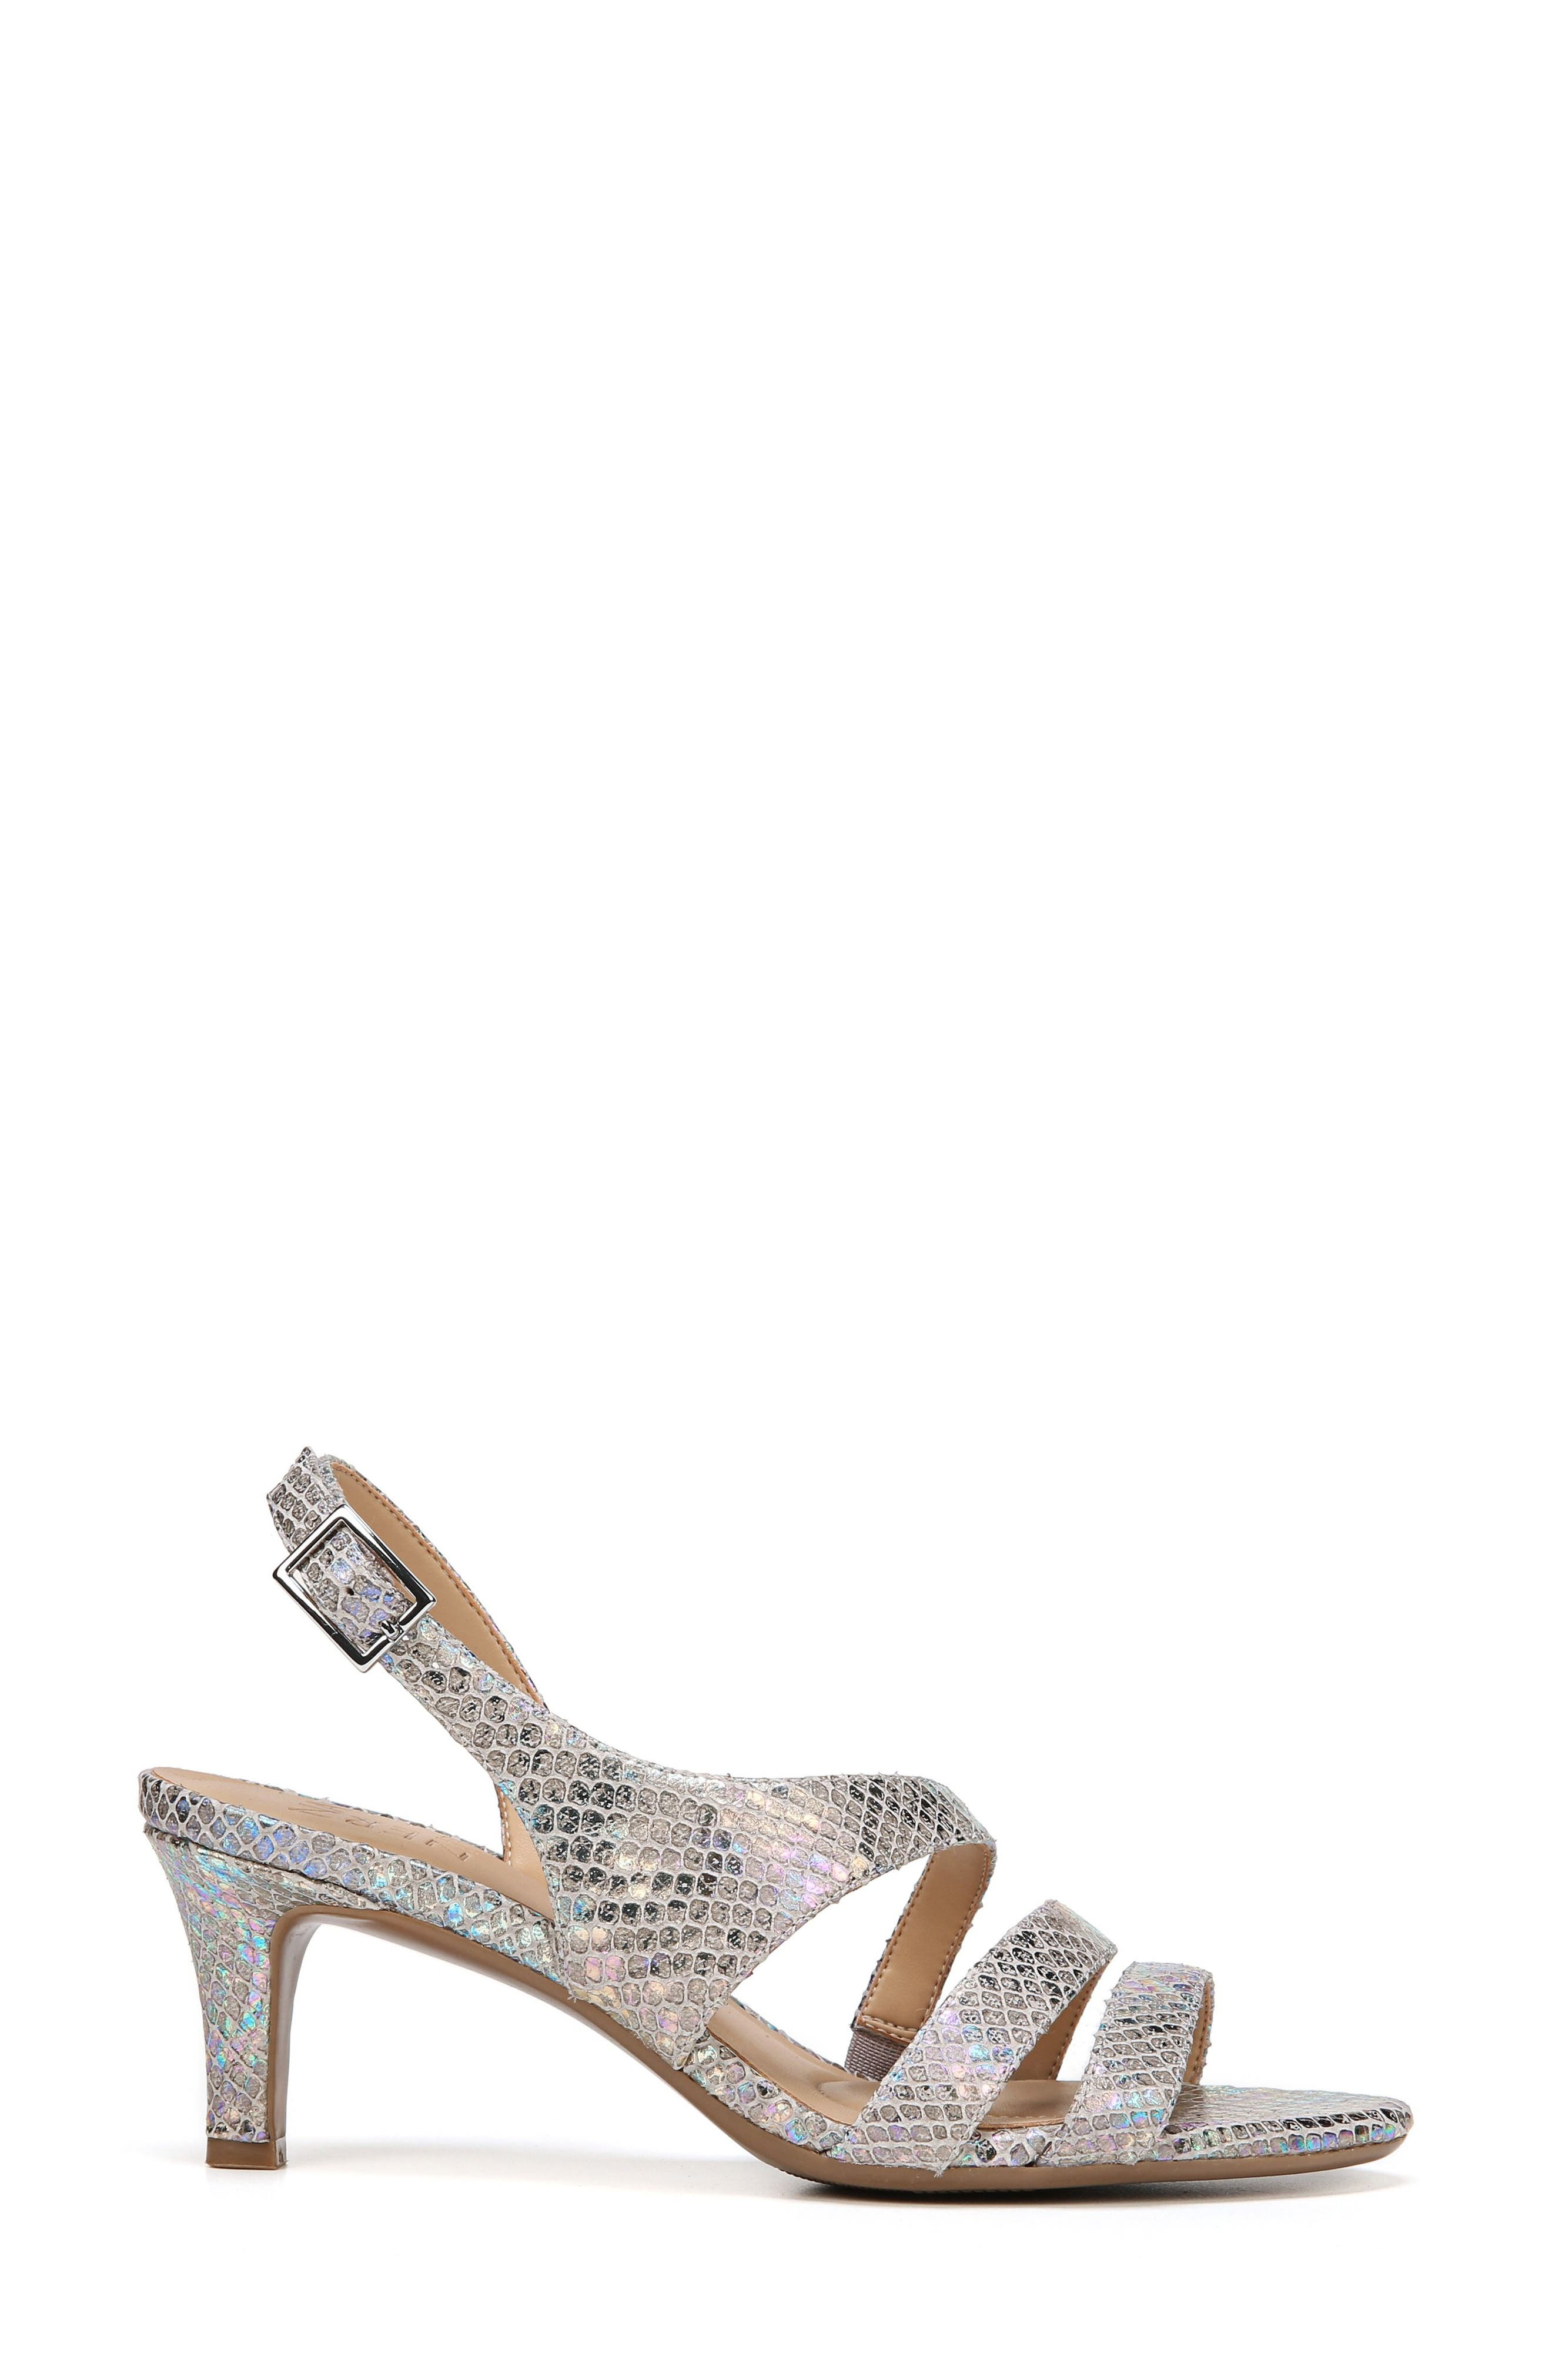 NATURALIZER, Taimi Sandal, Alternate thumbnail 3, color, SILVER SNAKE LEATHER PRINT